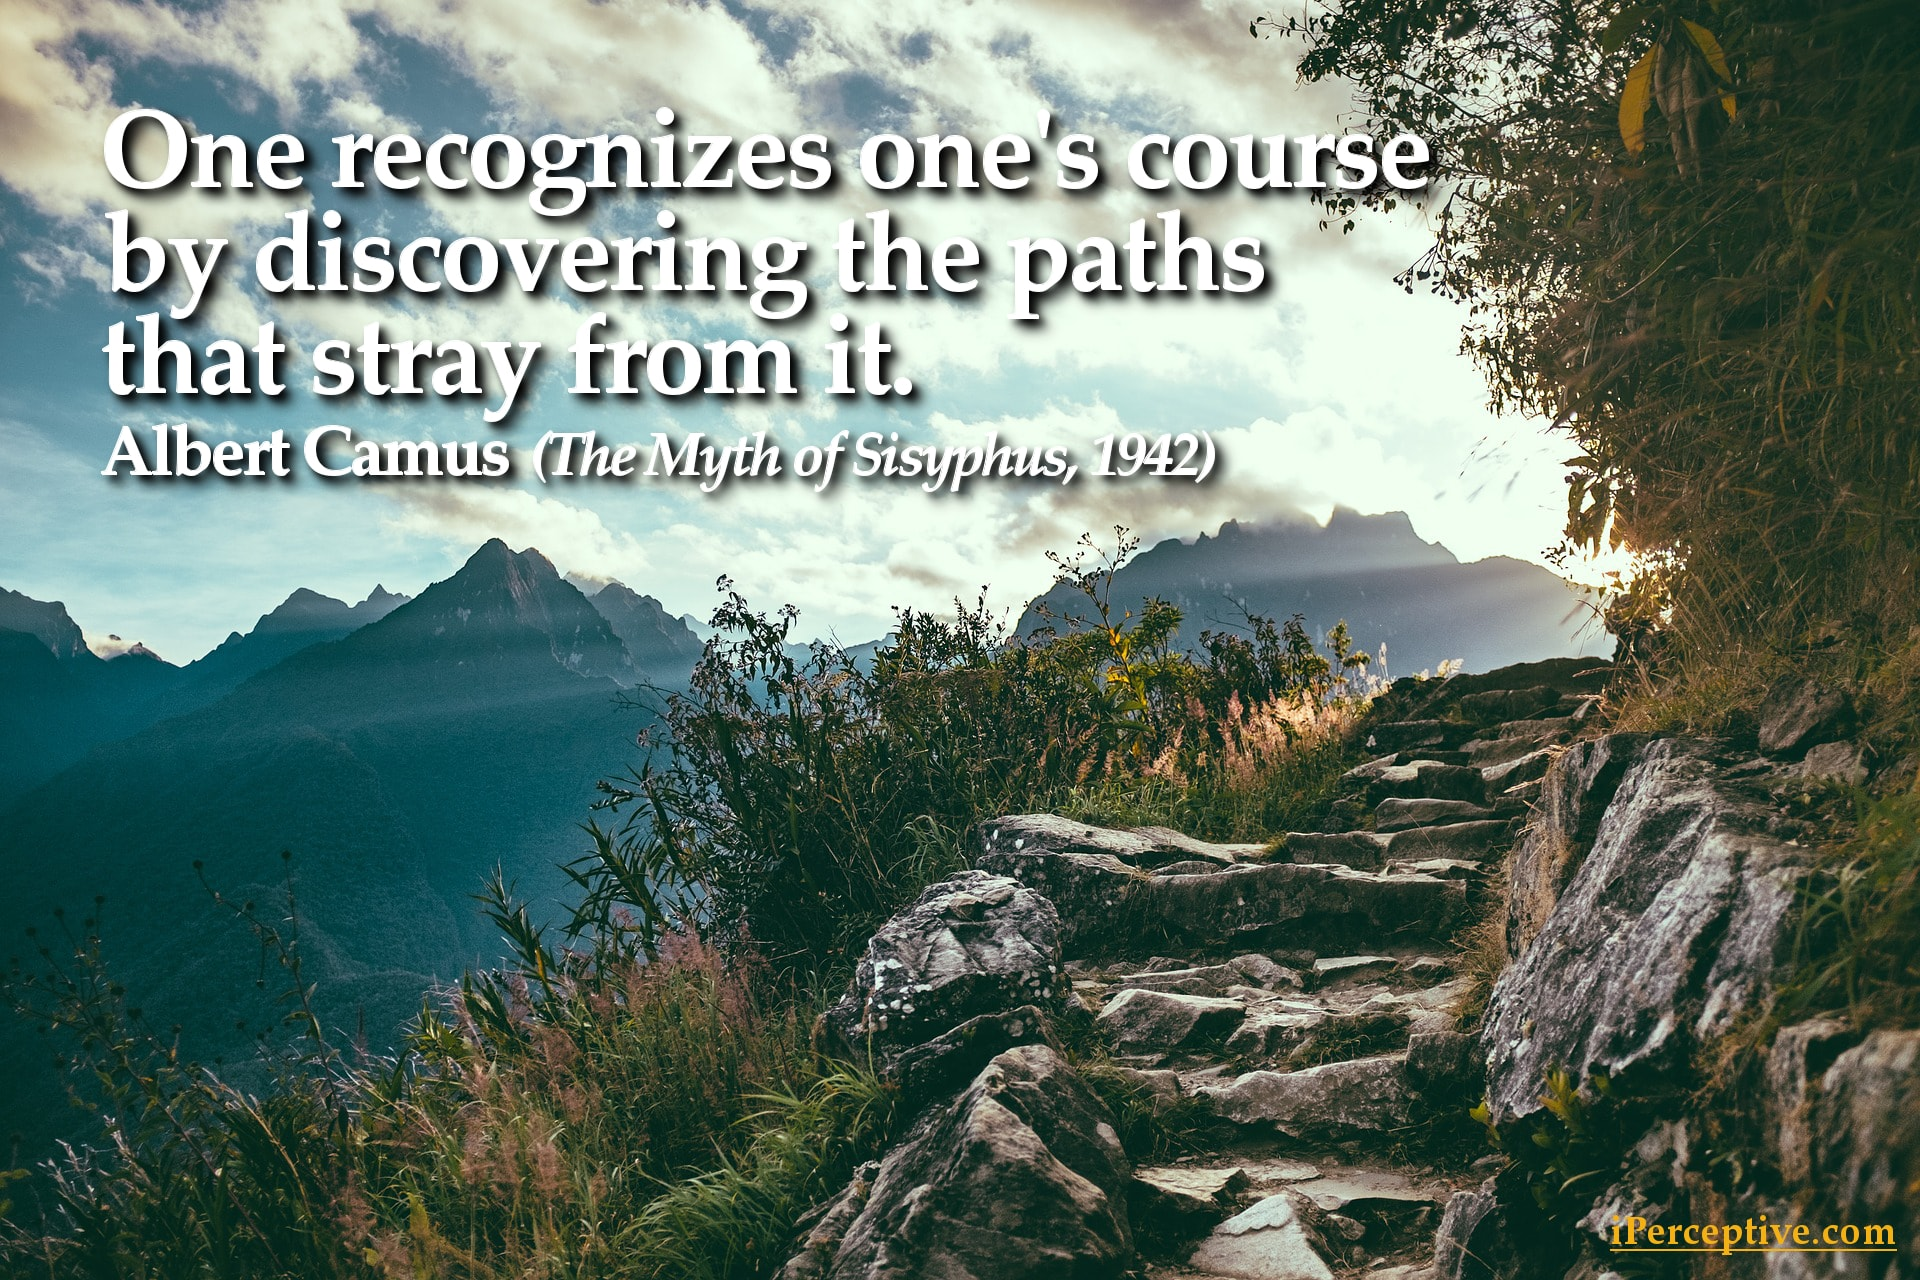 Albert Camus Quote: One recognizses ones course by discovering the paths...